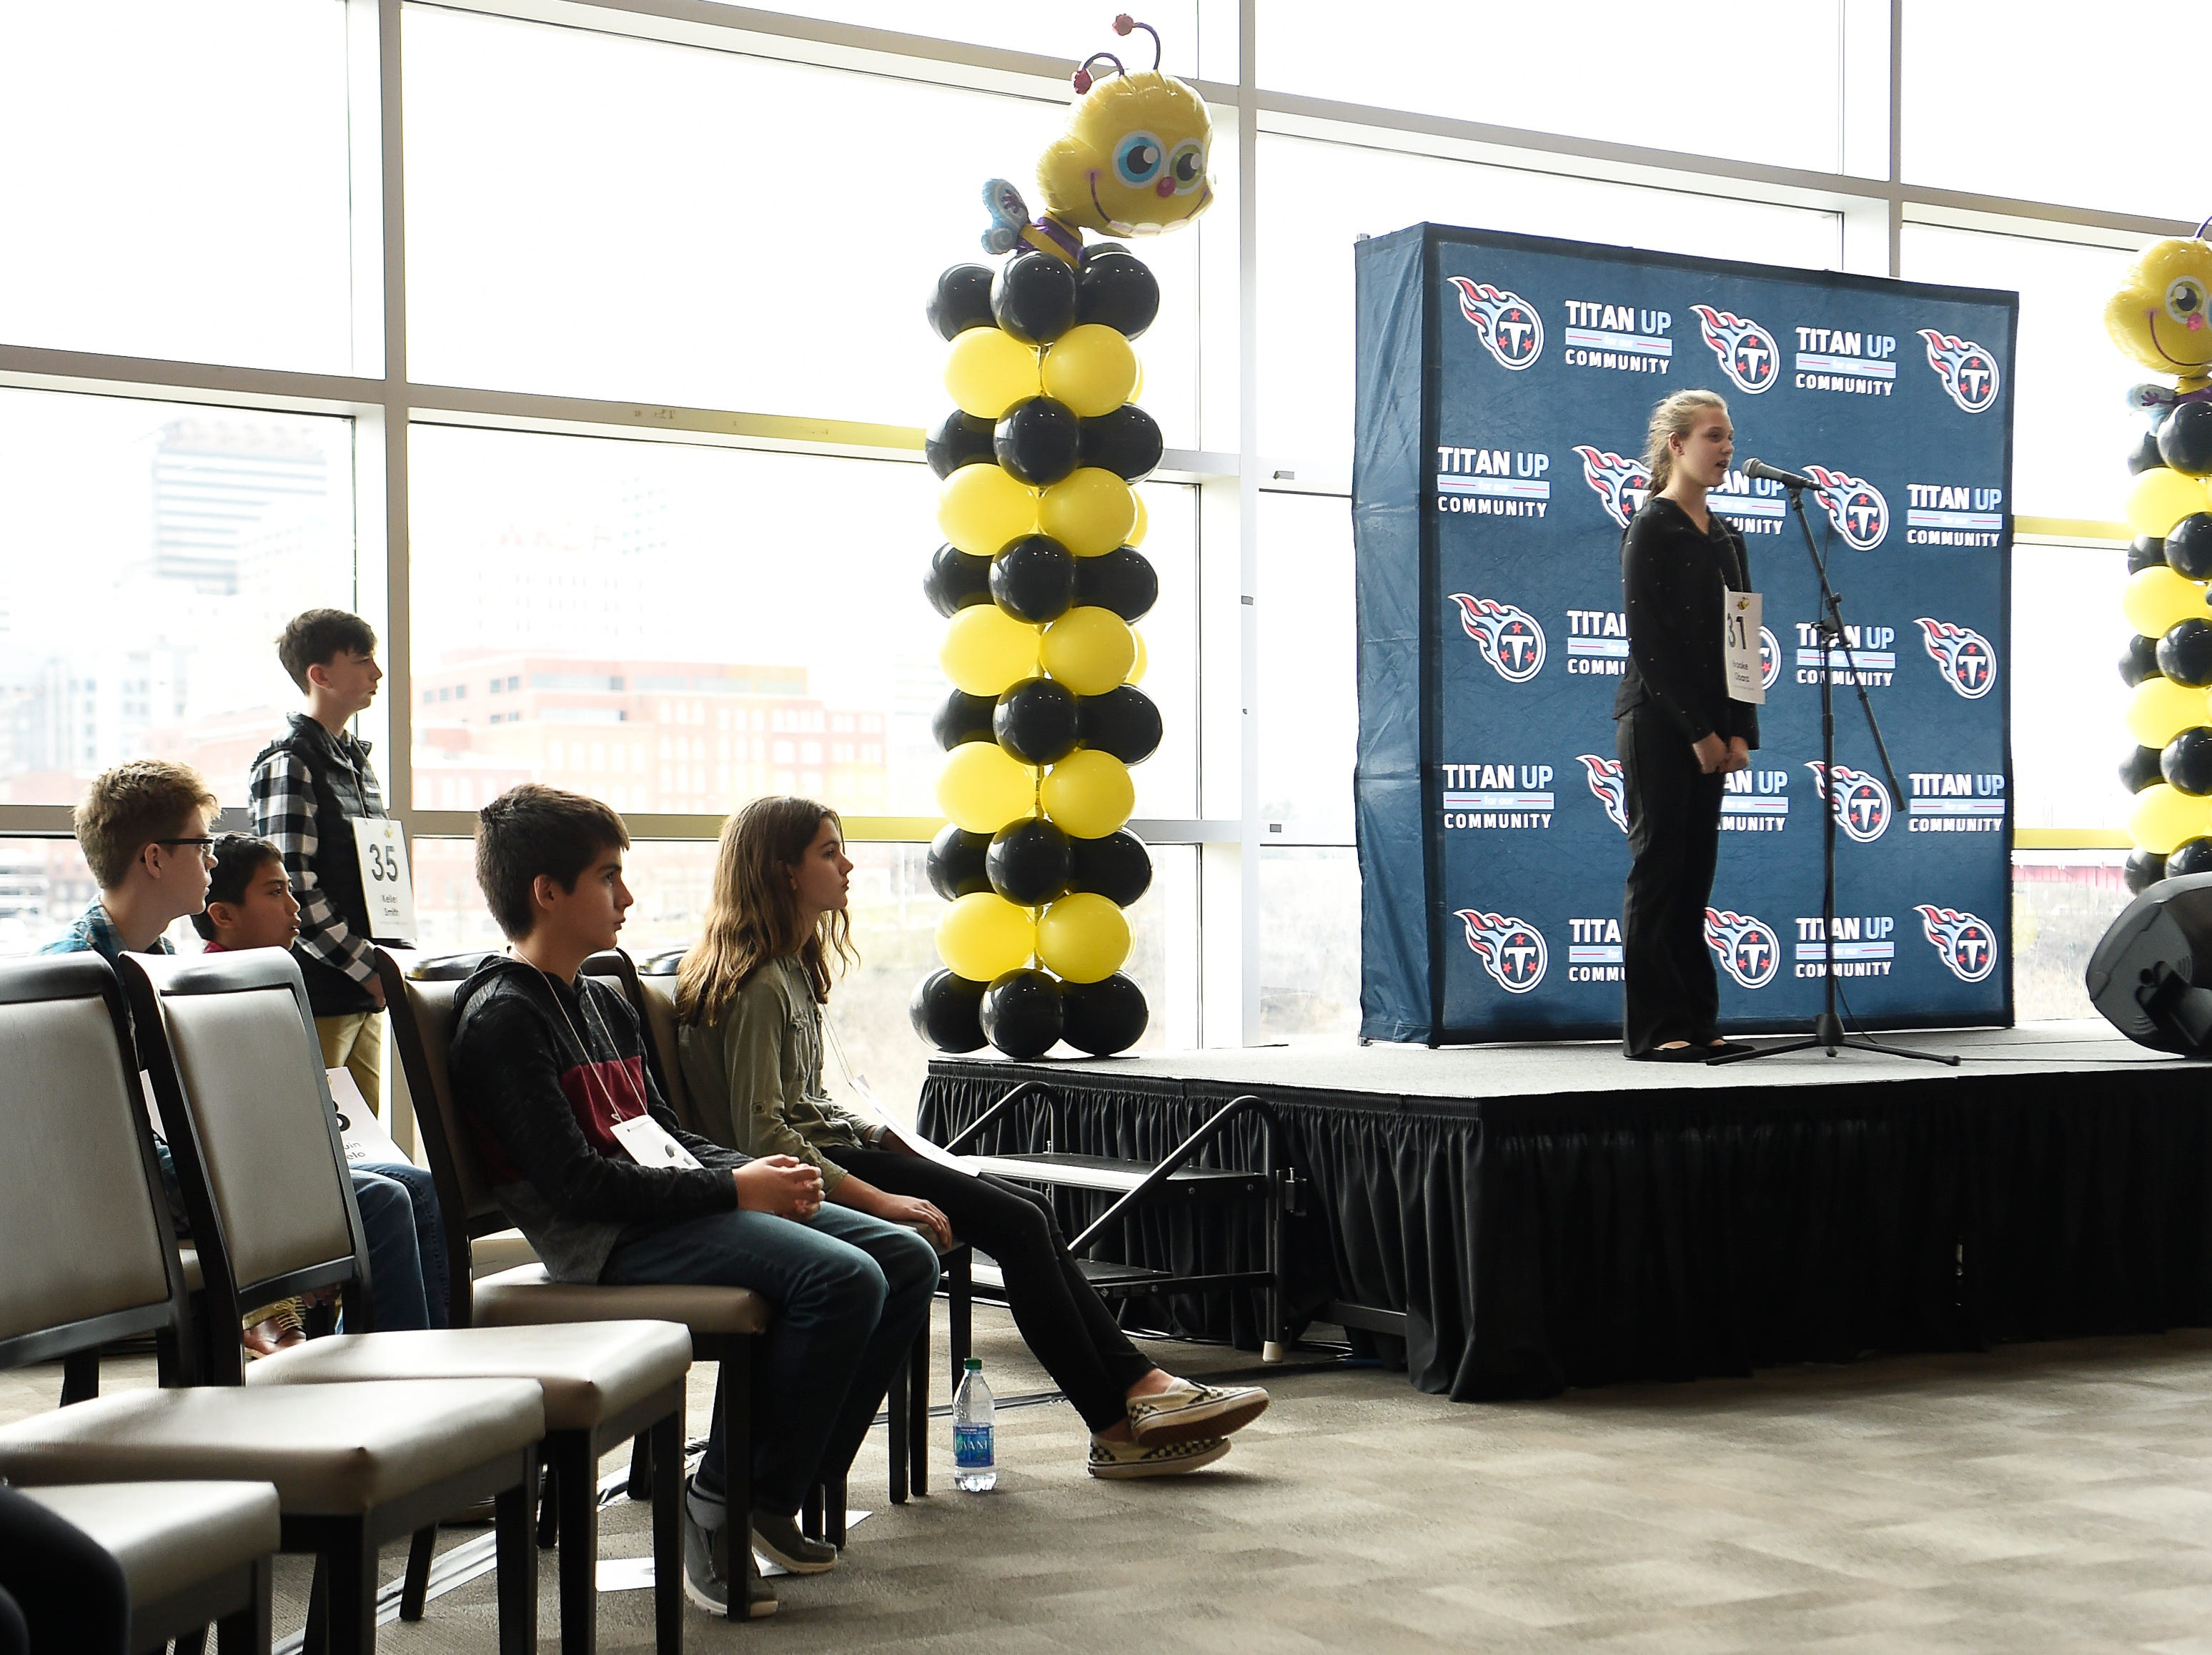 Brooke Obara competes in the Tennessee Titans Regional Spelling Bee at Nissan Stadium Saturday, Feb. 16, 2019 in Nashville, Tenn.